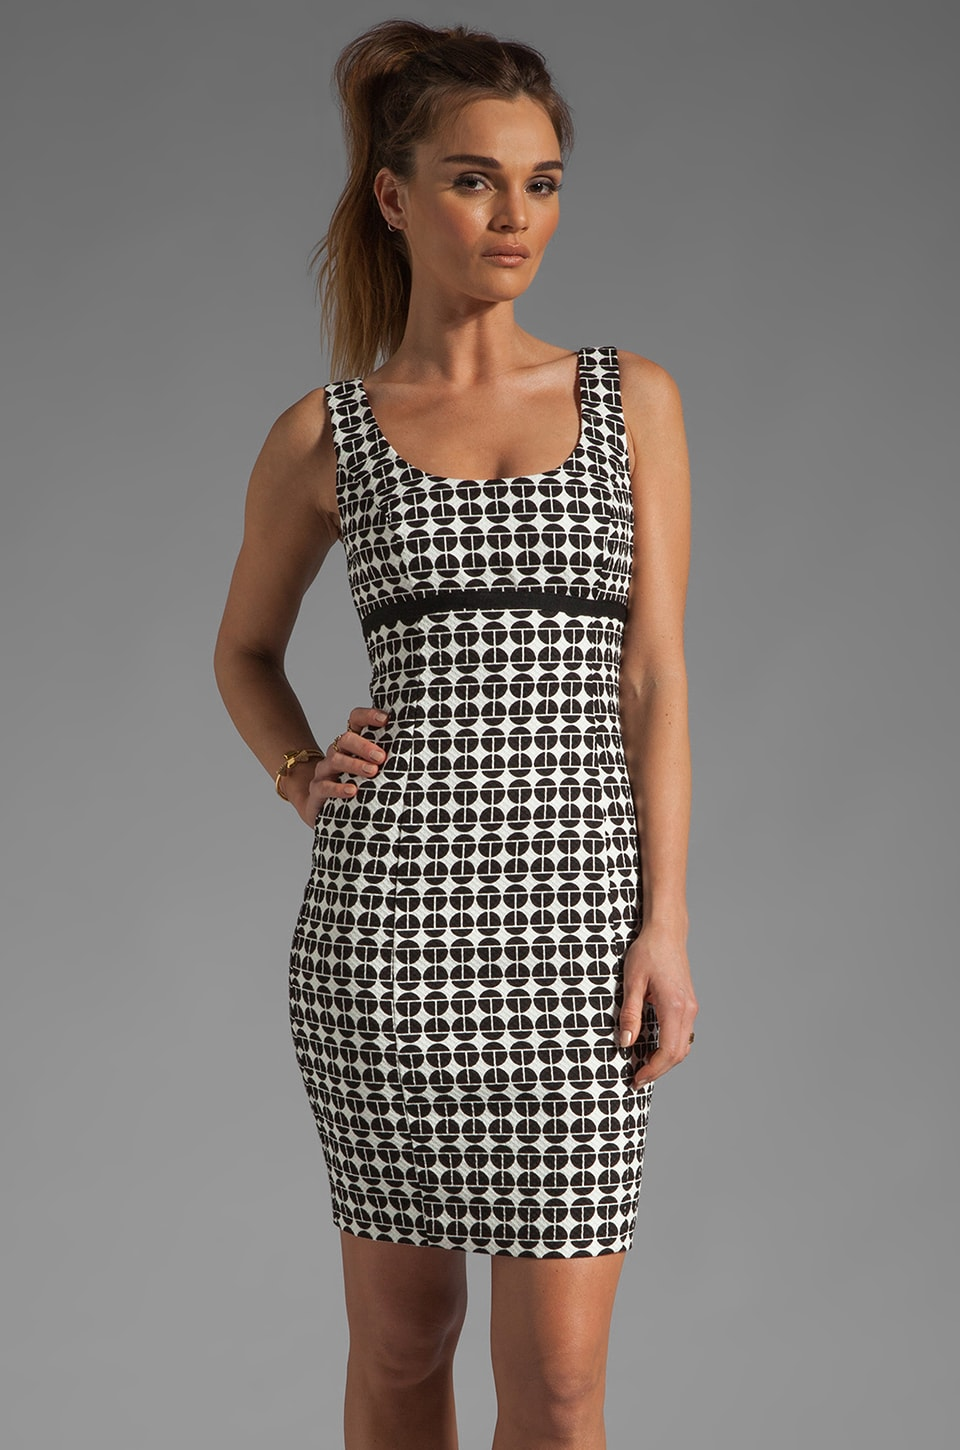 Trina Turk Garreth Dress in Black/White